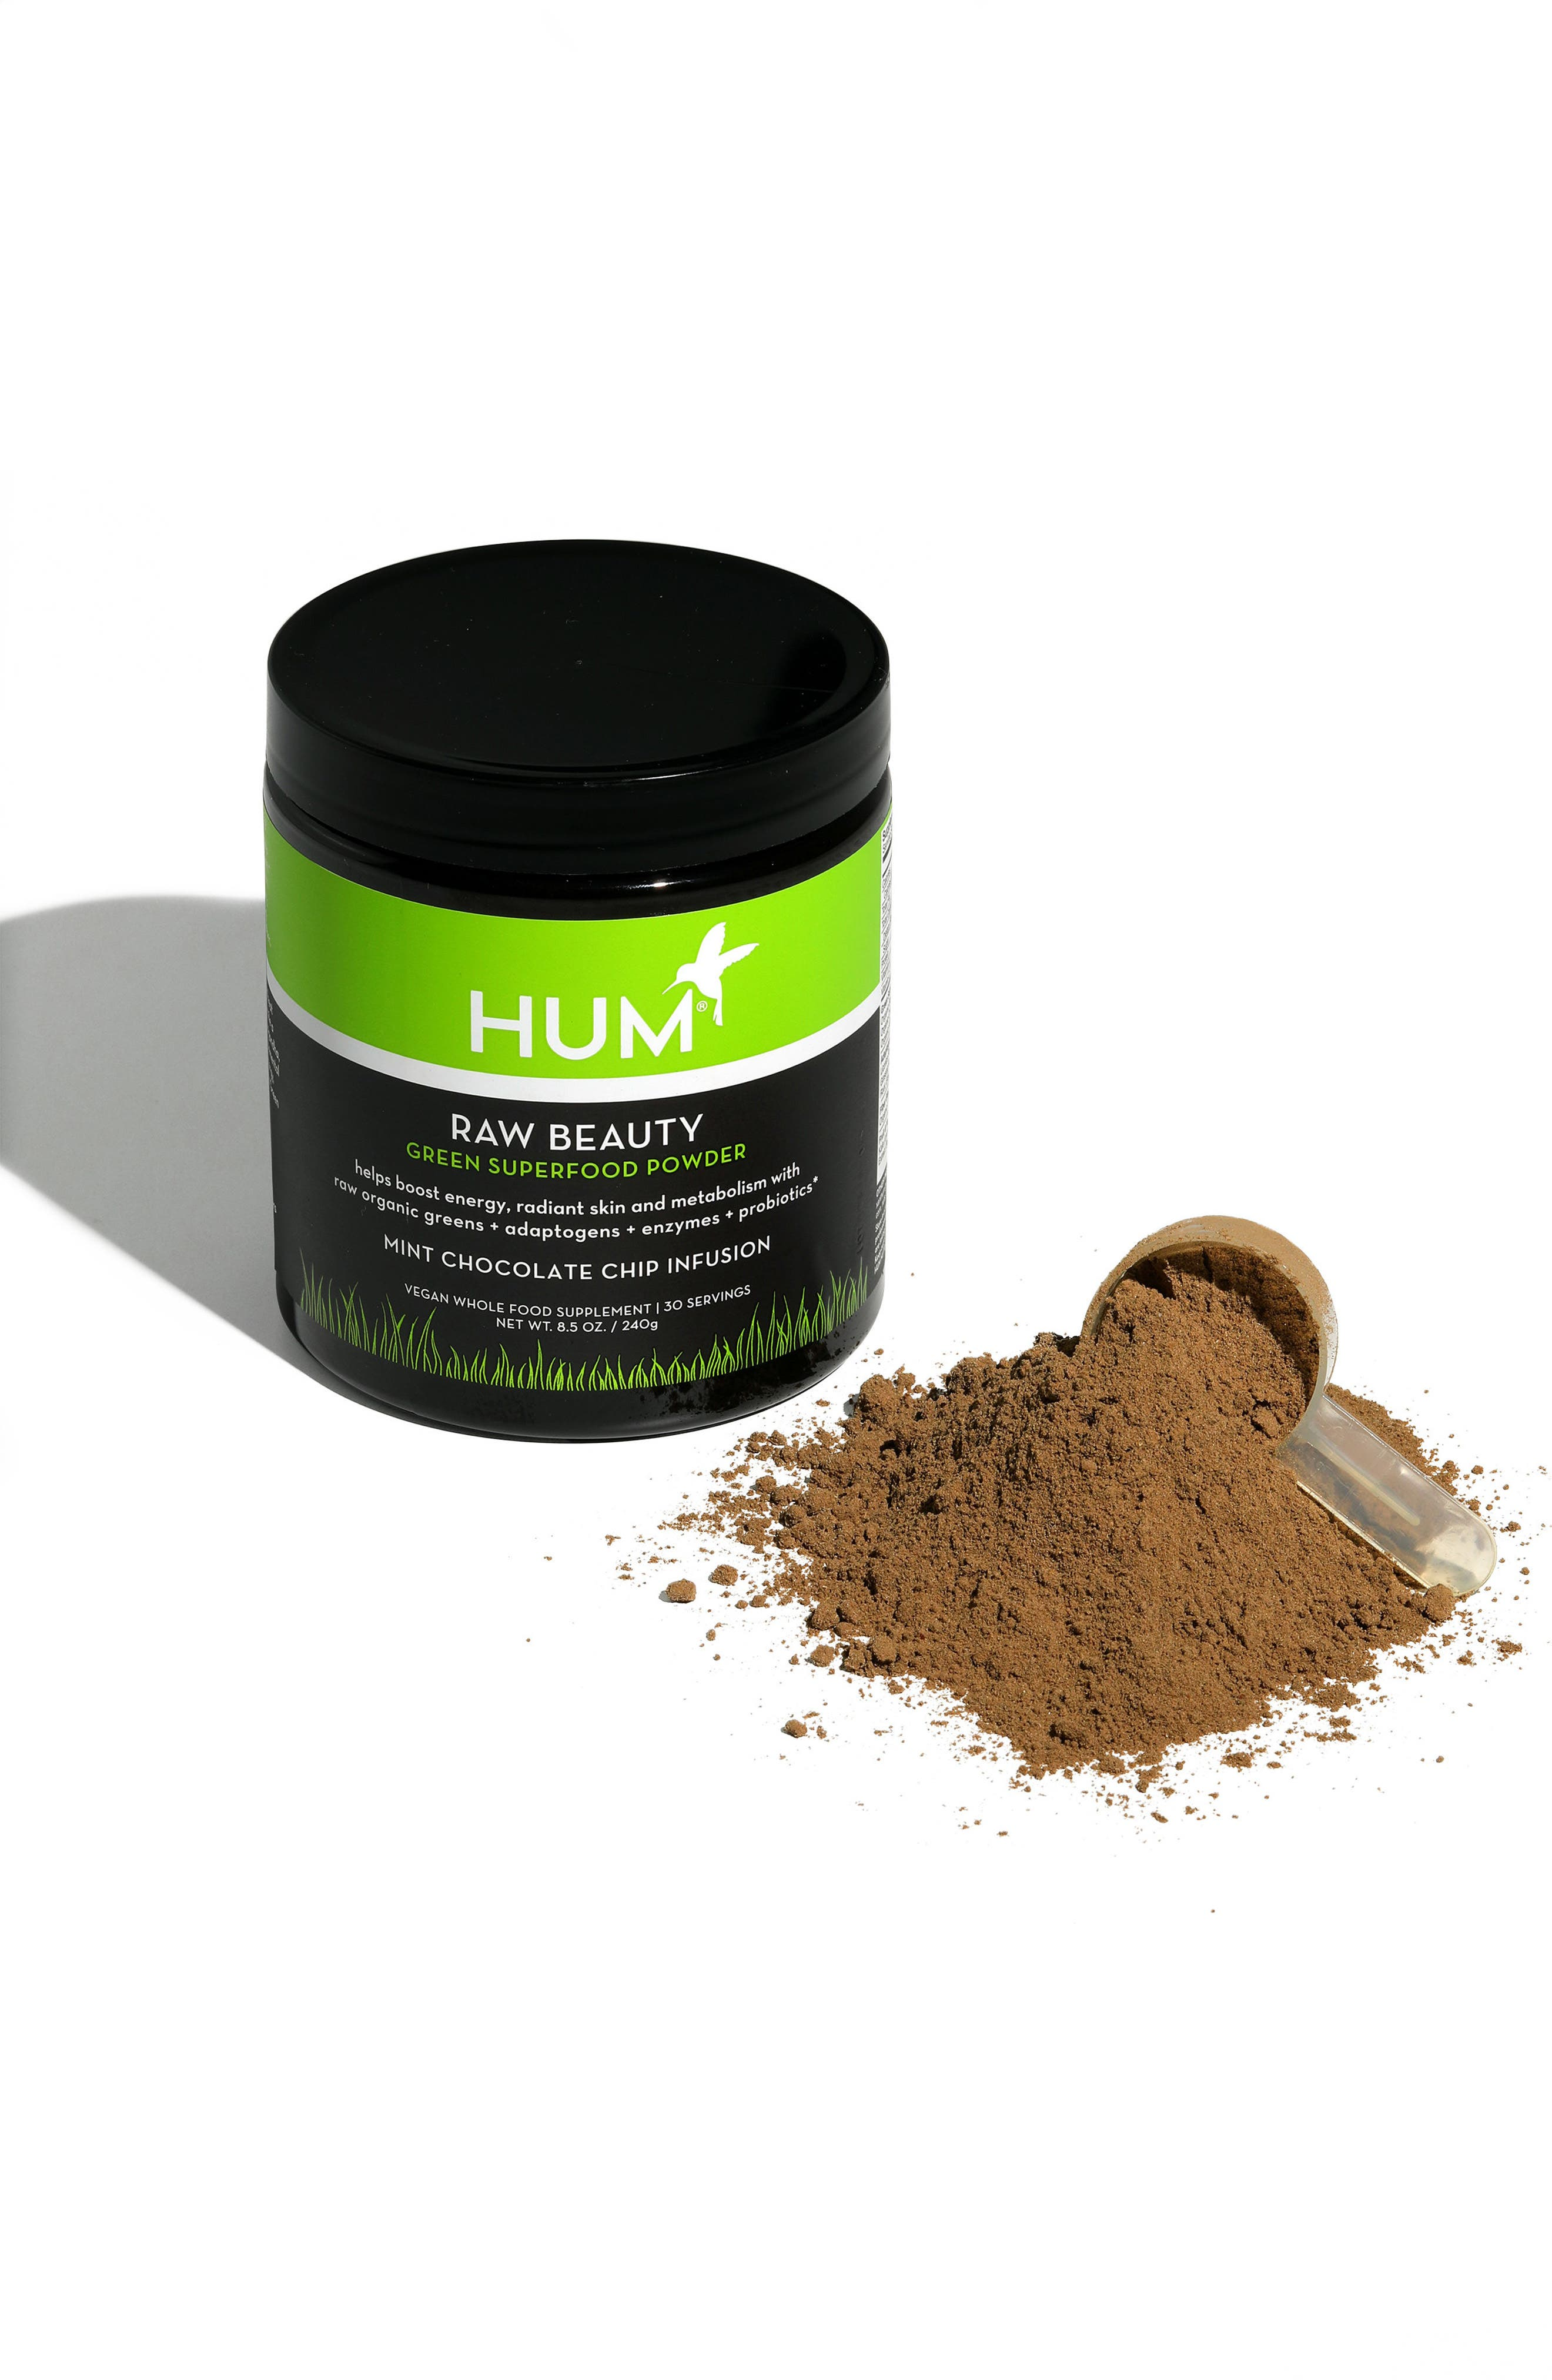 Raw Beauty Skin & Energy Green Superfood Powder,                             Alternate thumbnail 5, color,                             NO COLOR